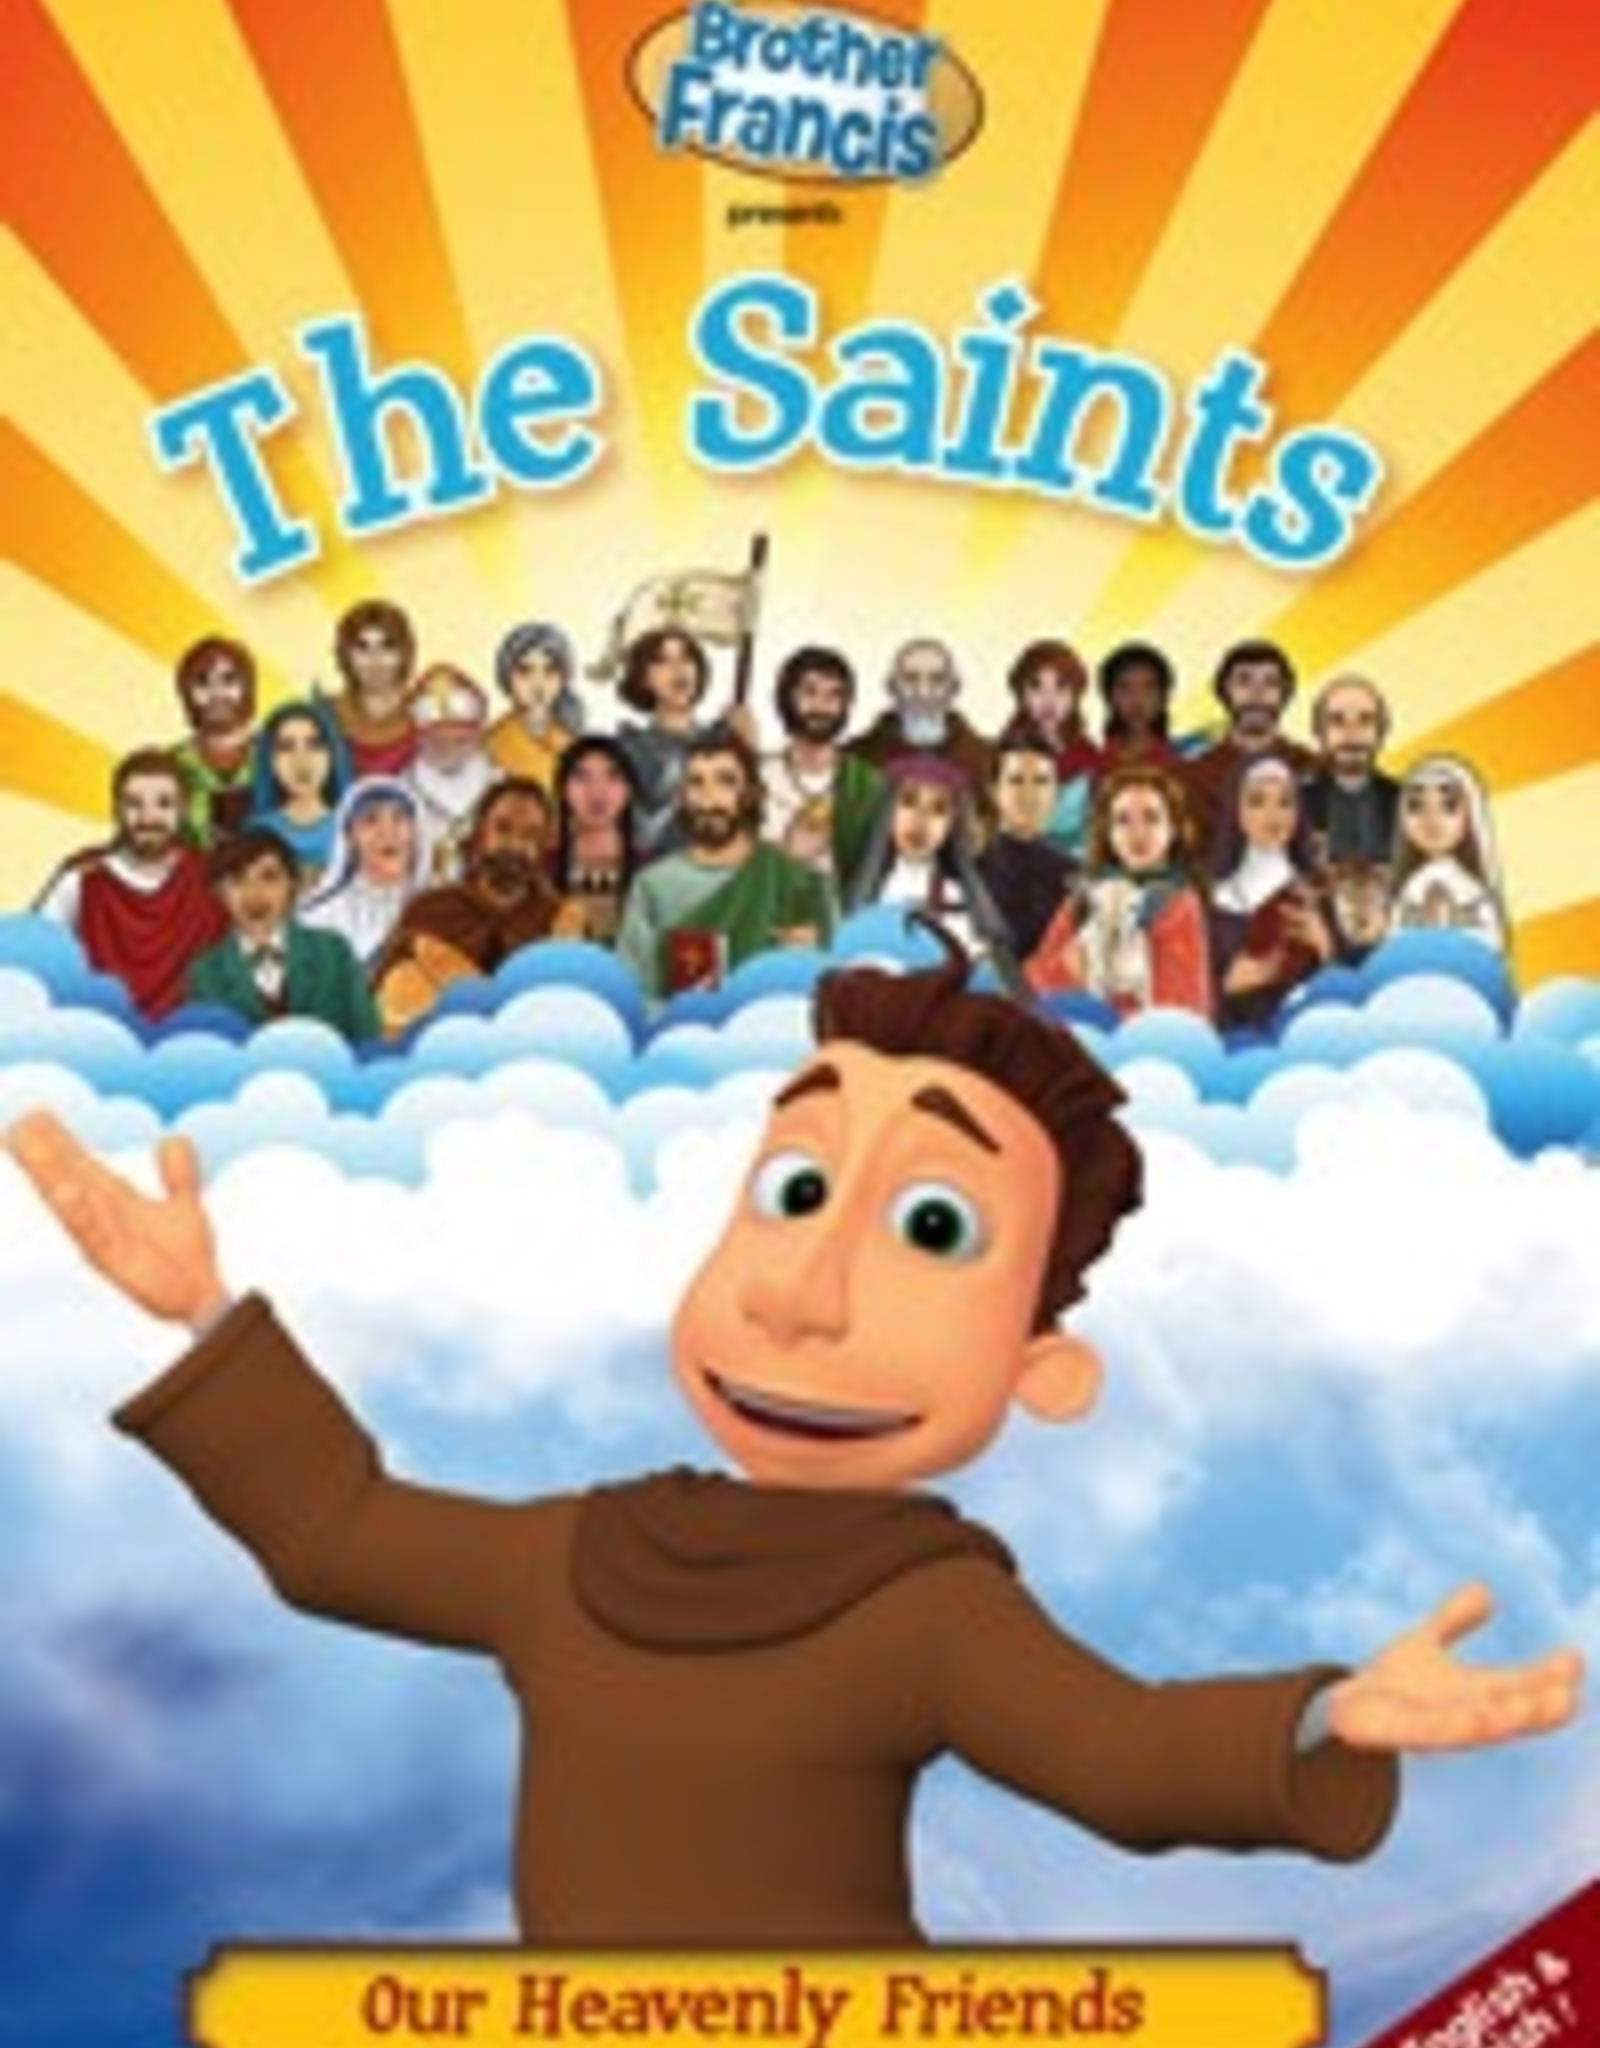 Ignatius Press Brother Francis:  The Saints, Our Heavenly Friends (DVD)